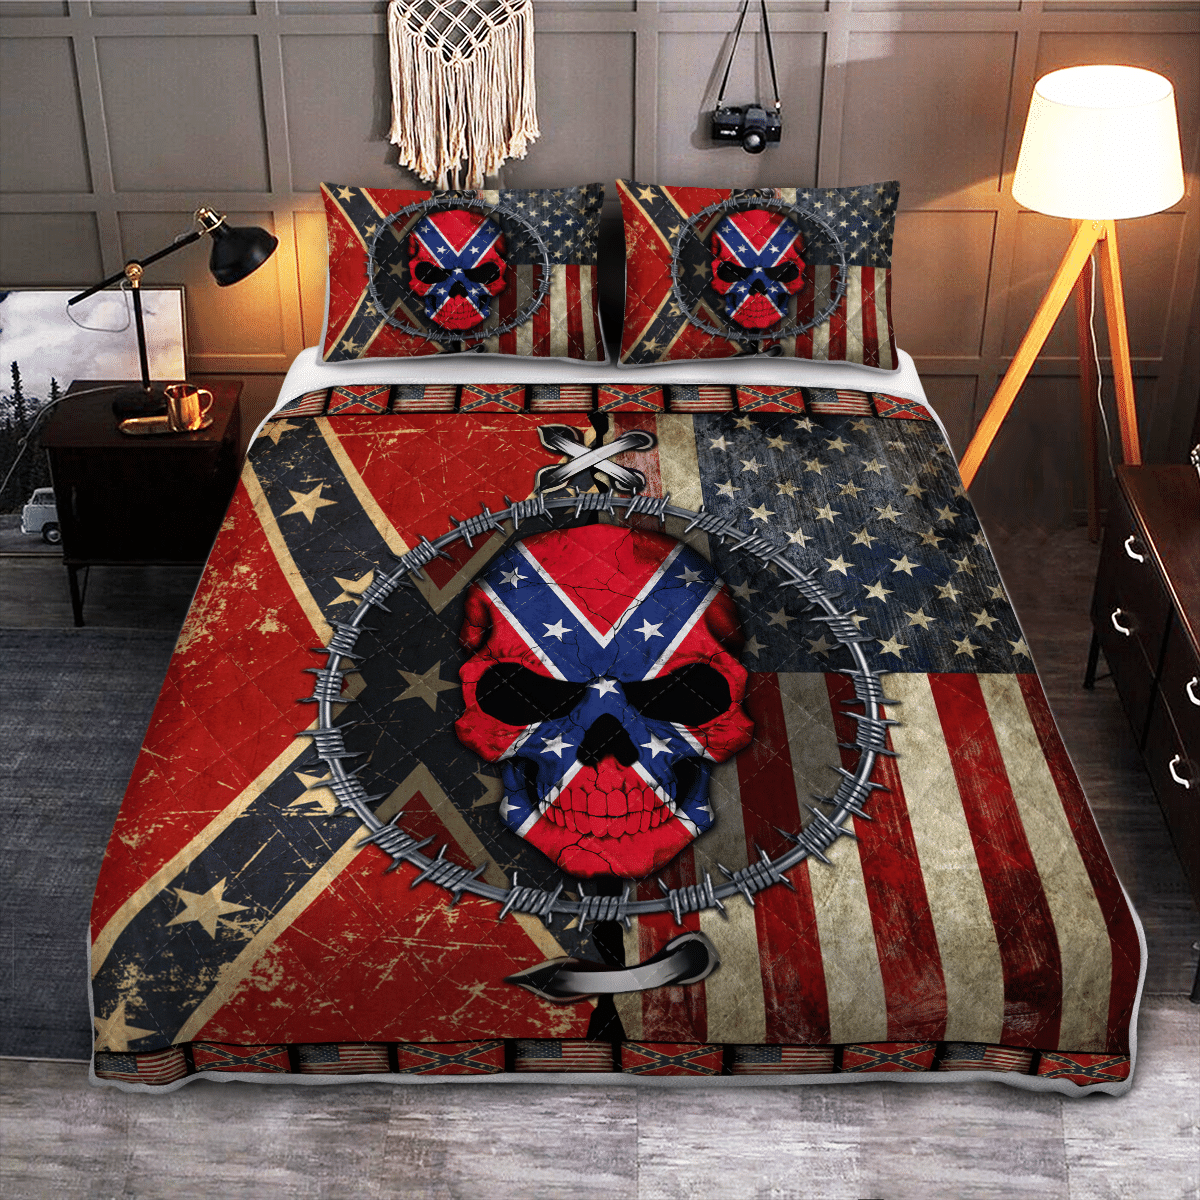 The Southern American Skull Bedding Set 3